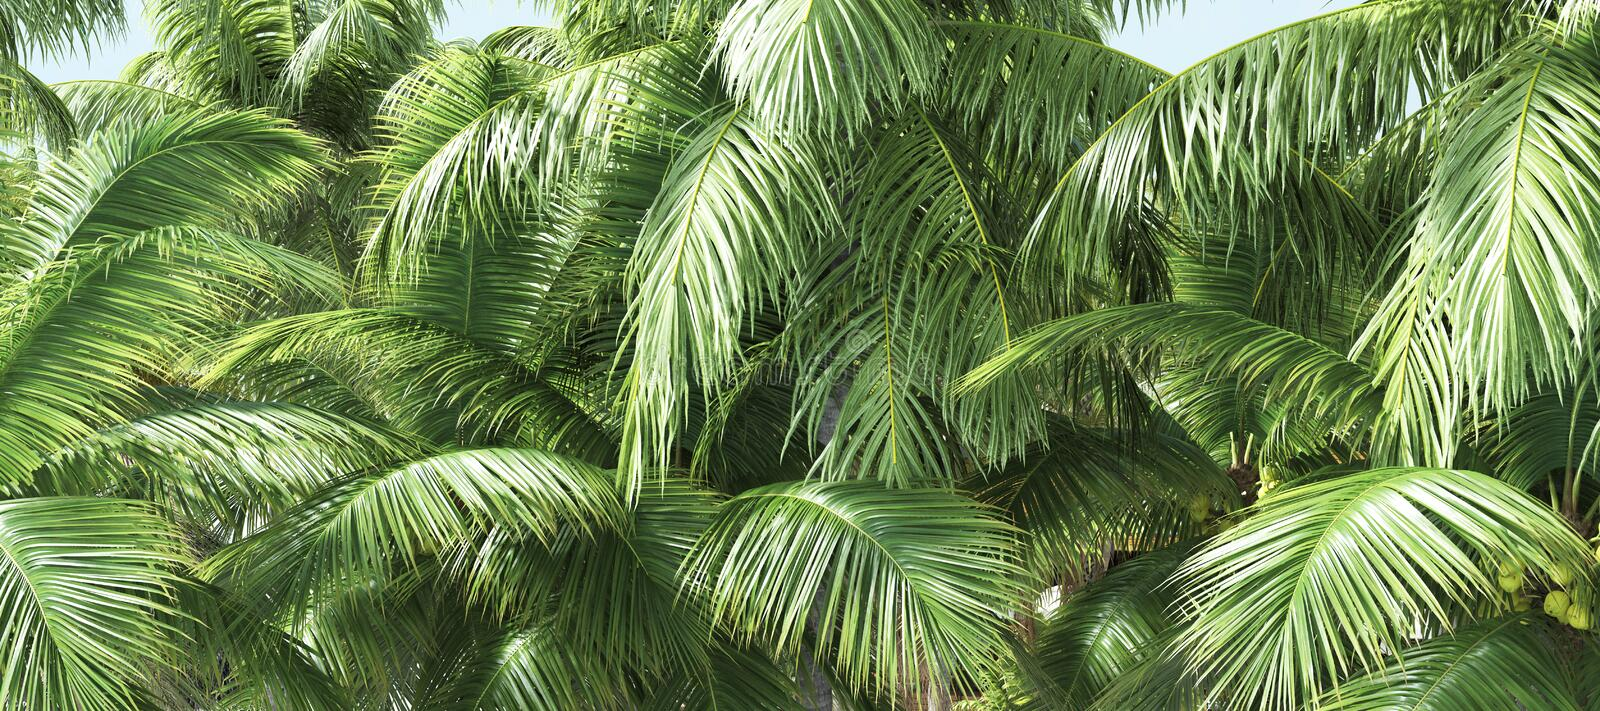 Coconut palm trees, beautiful tropical background royalty free stock images